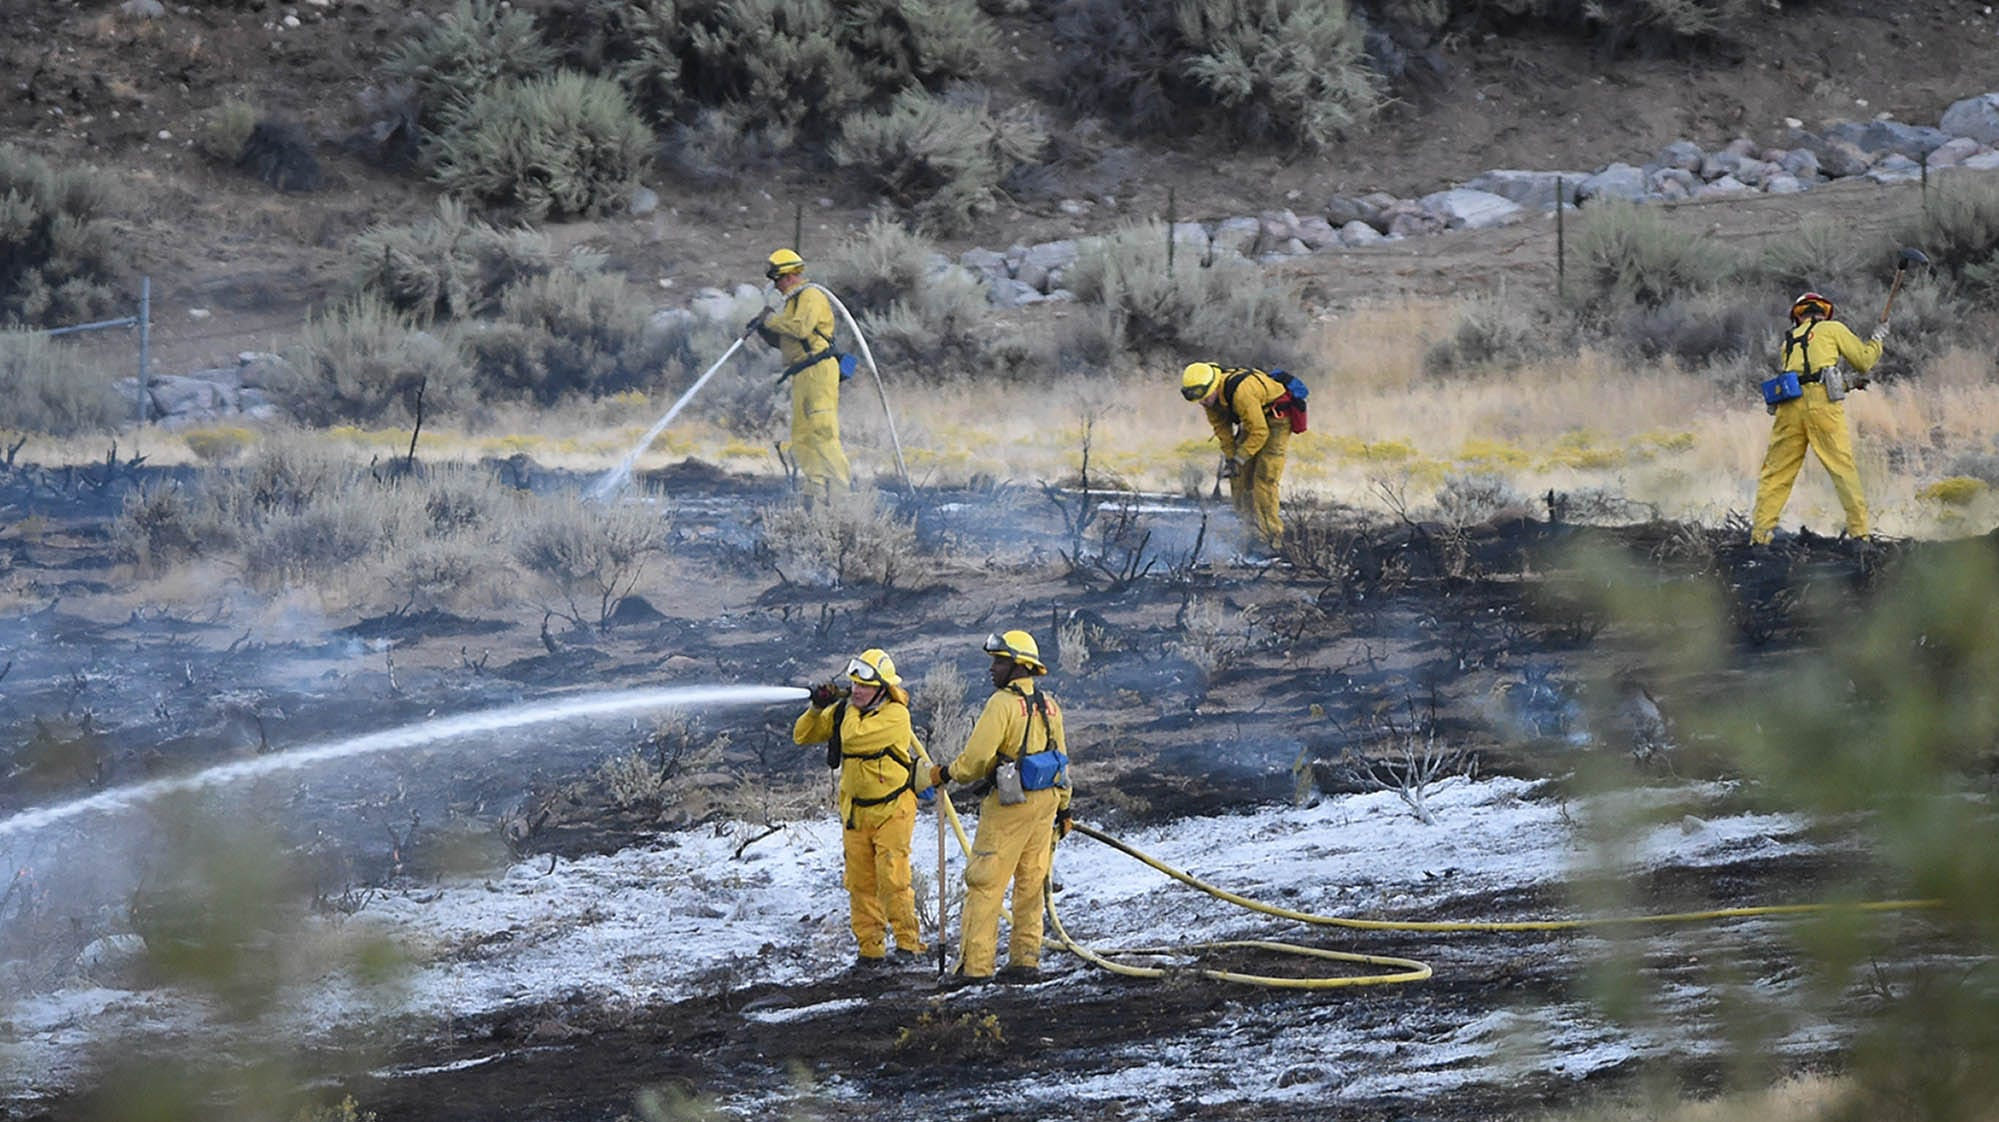 Firefighters work a brush fire that started on Tuesday afternoon off the I-80 west of the Rob Dive exit on Sept. 25, 2018.